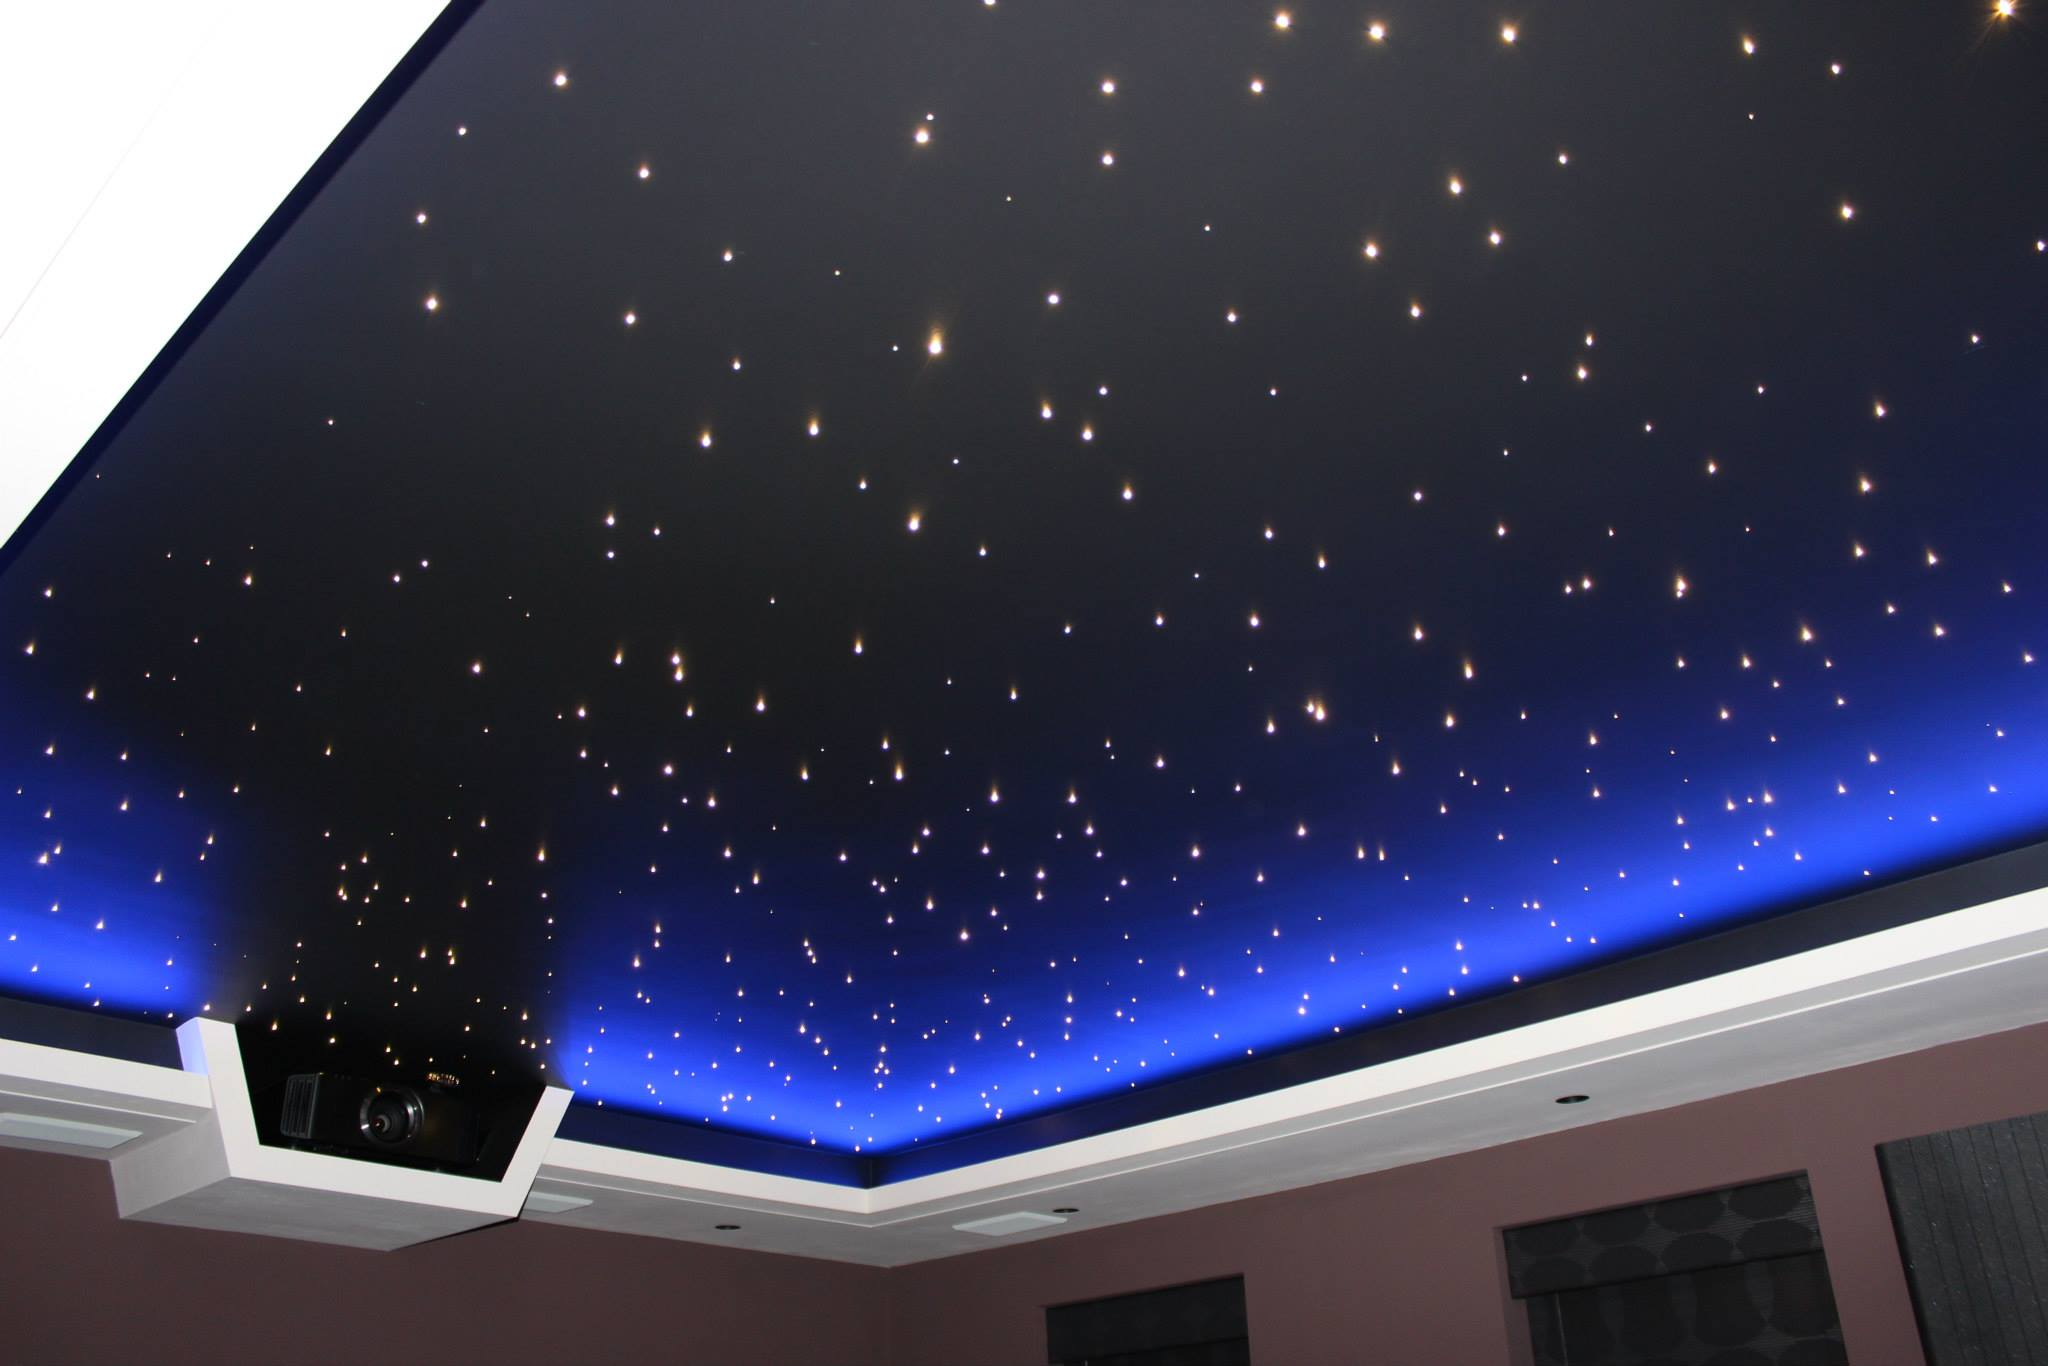 Stars bedroom ceiling